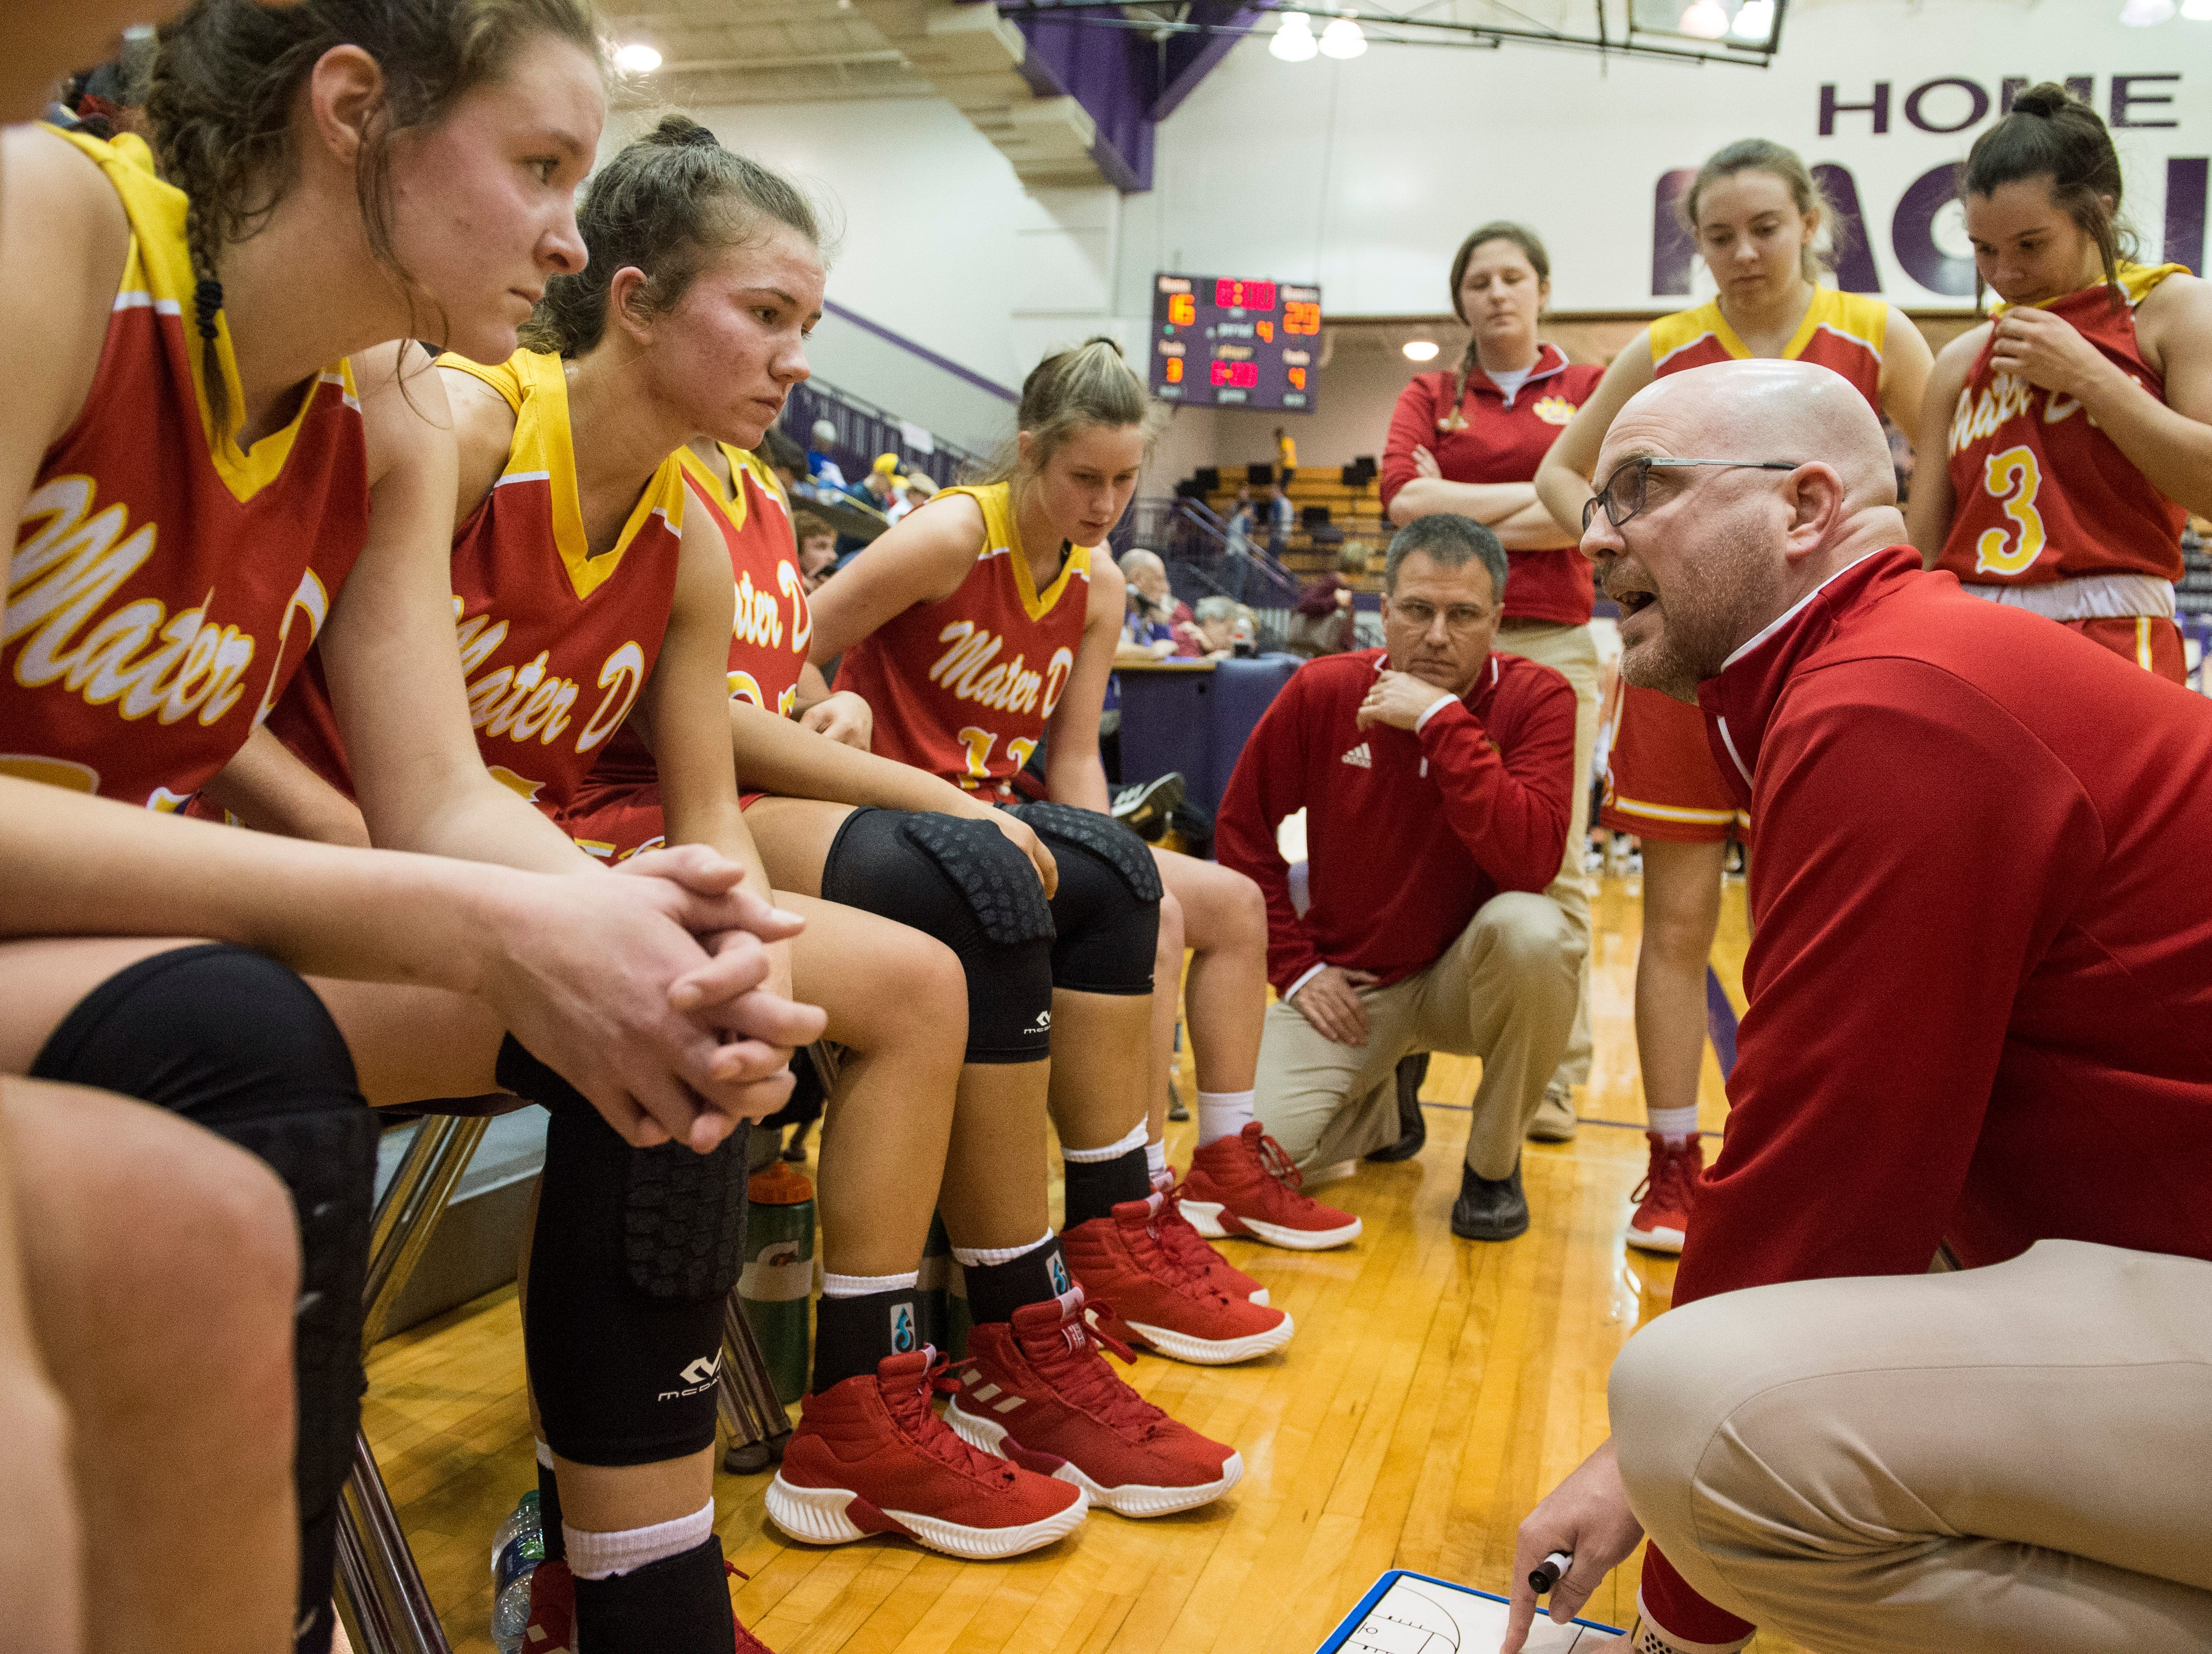 Mater Dei Head Coach Chad Breeden directs players during a timeout in the IHSAA Class 2A Girls' Basketball Regional #12 game against the South Ripley Raiders at Paoli Jr. Sr. high school Saturday, Feb. 9, 2019. Mater Dei Won, 39-23.